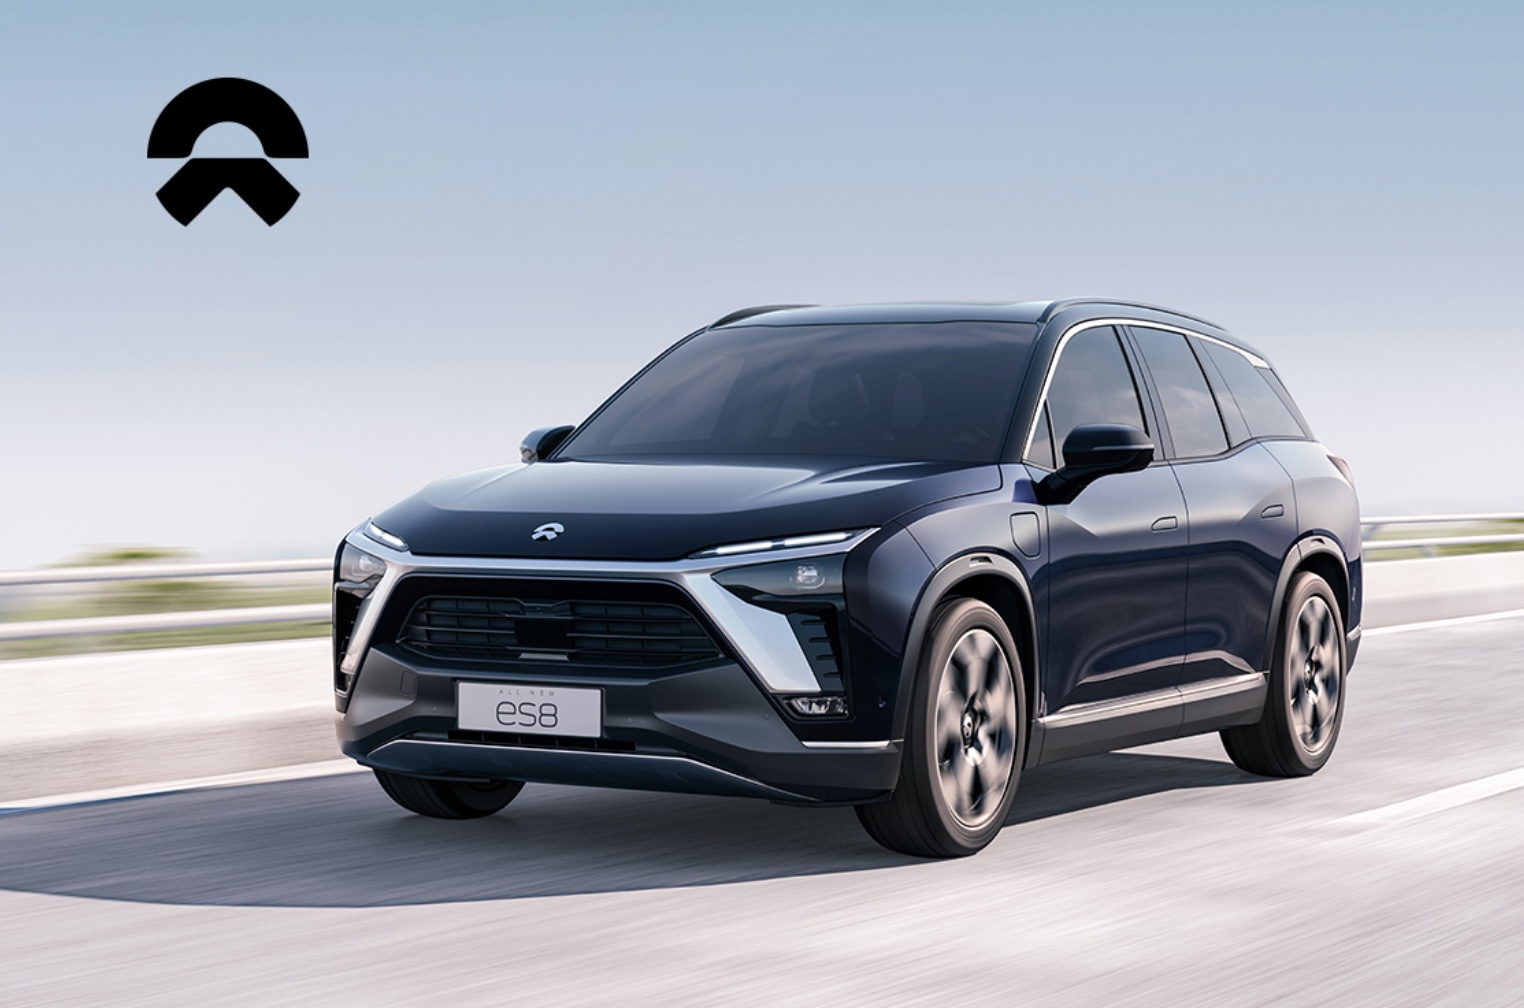 NIO, Li Auto, XPeng, WM Motor, which is the most competitive?-CnTechPost